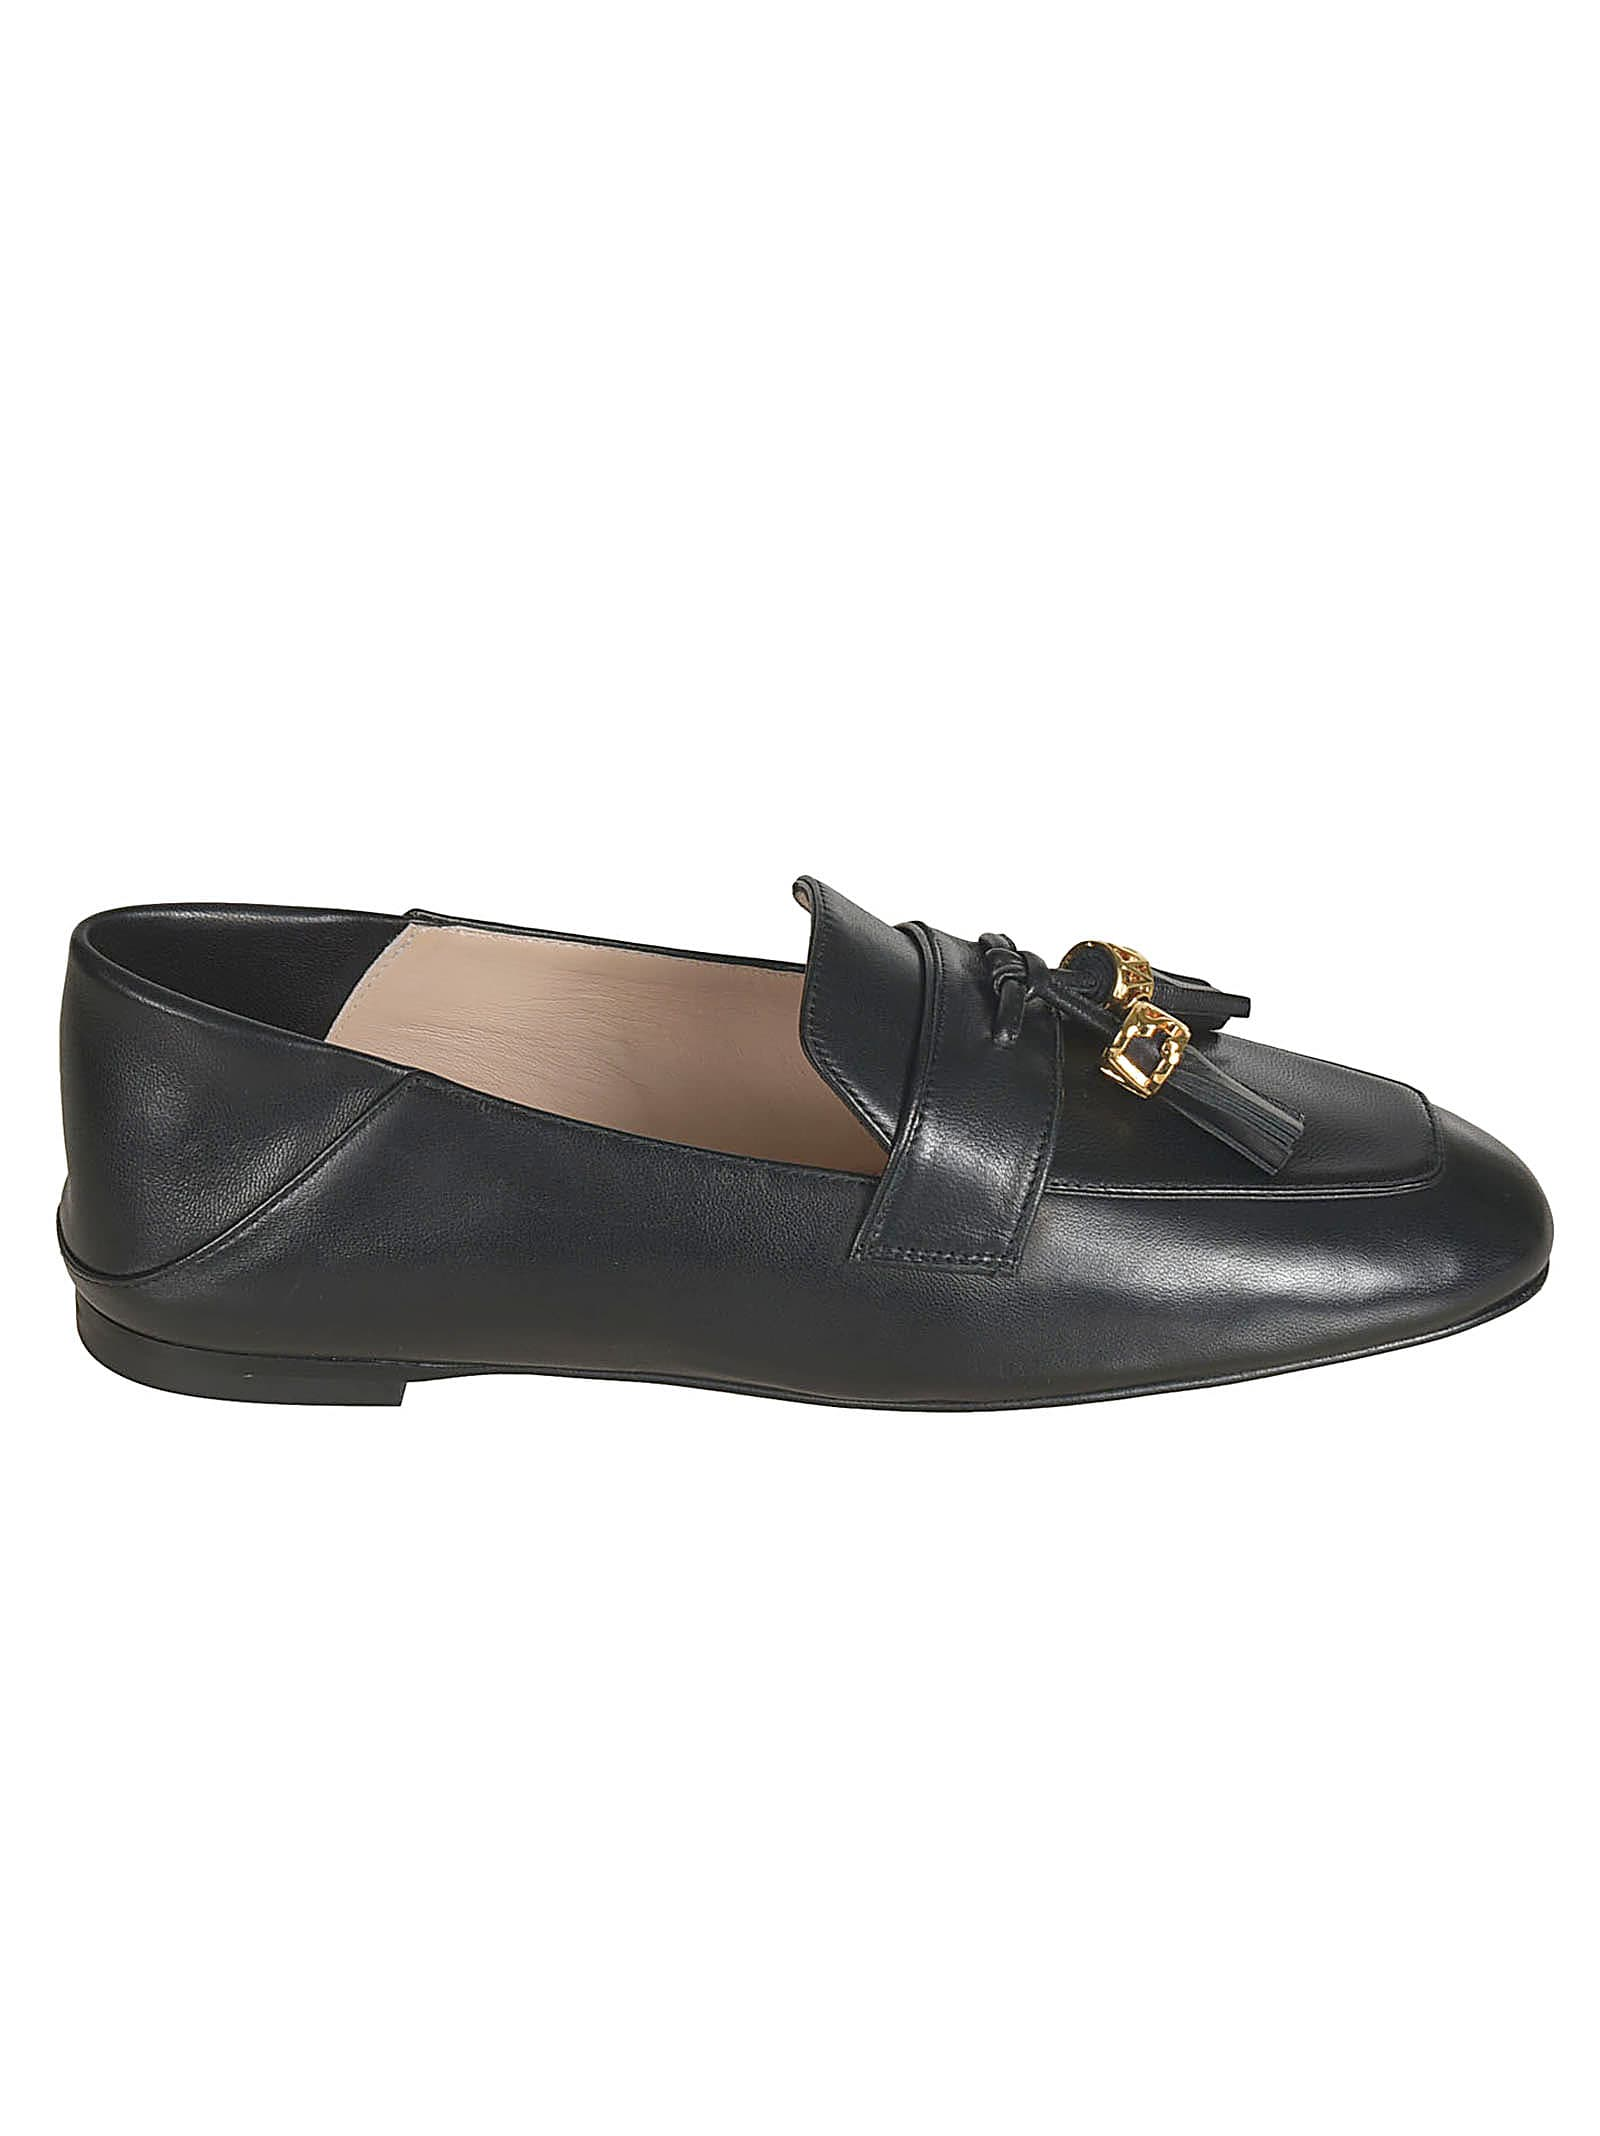 Stuart Weitzman Loafers WYLIE SIGNATURE LOAFERS